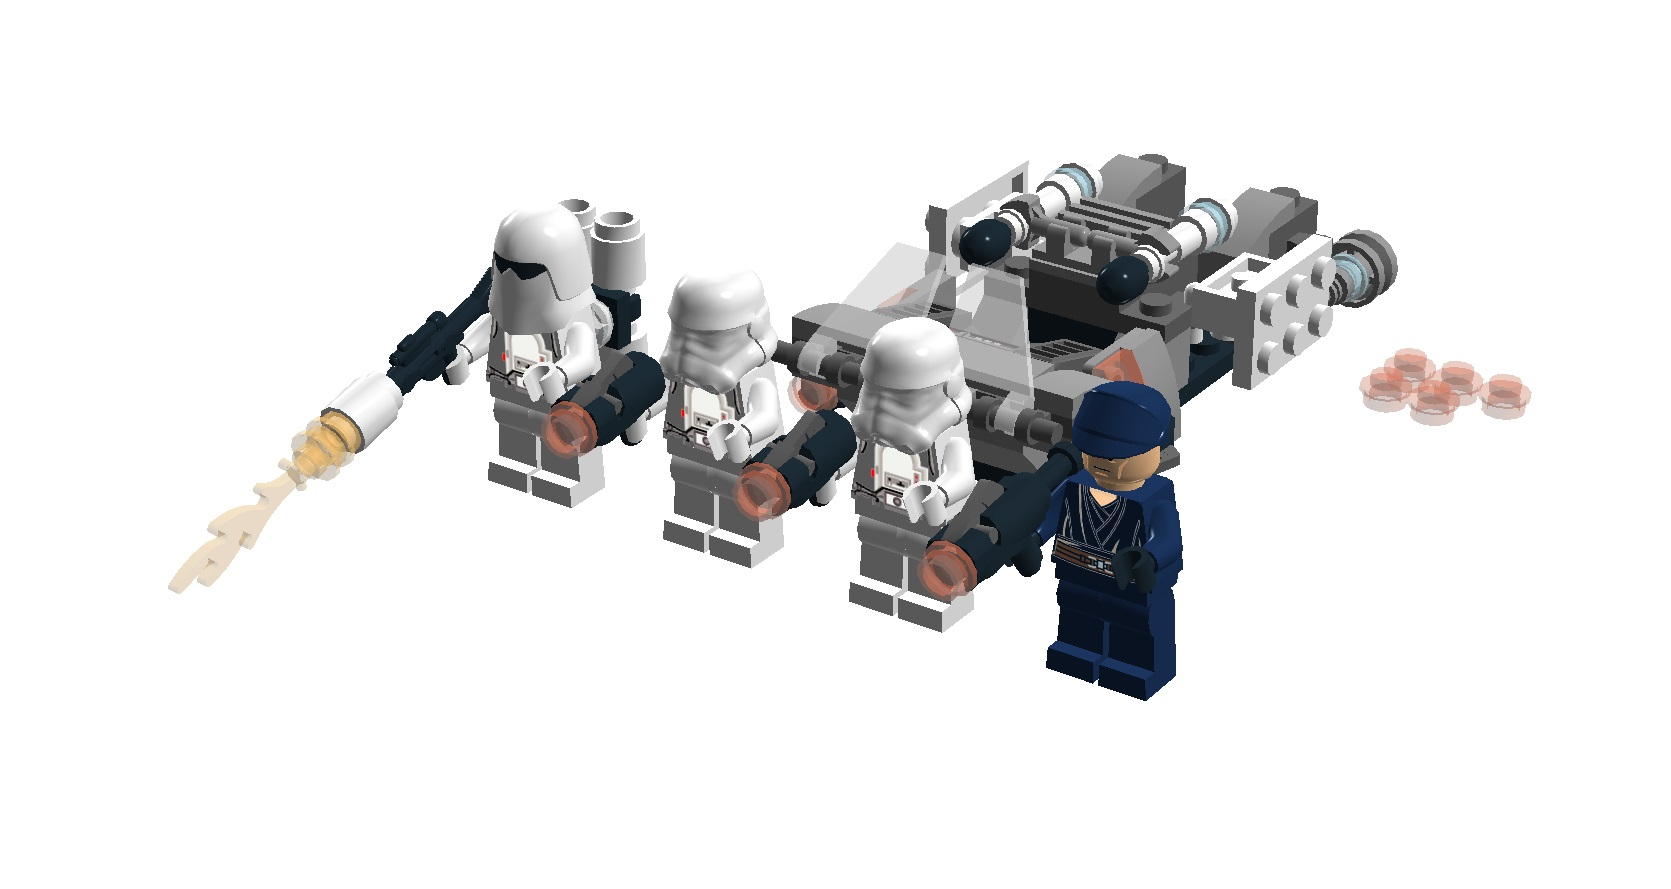 75166_first_order_tansport_speeder_battle_pack.jpg